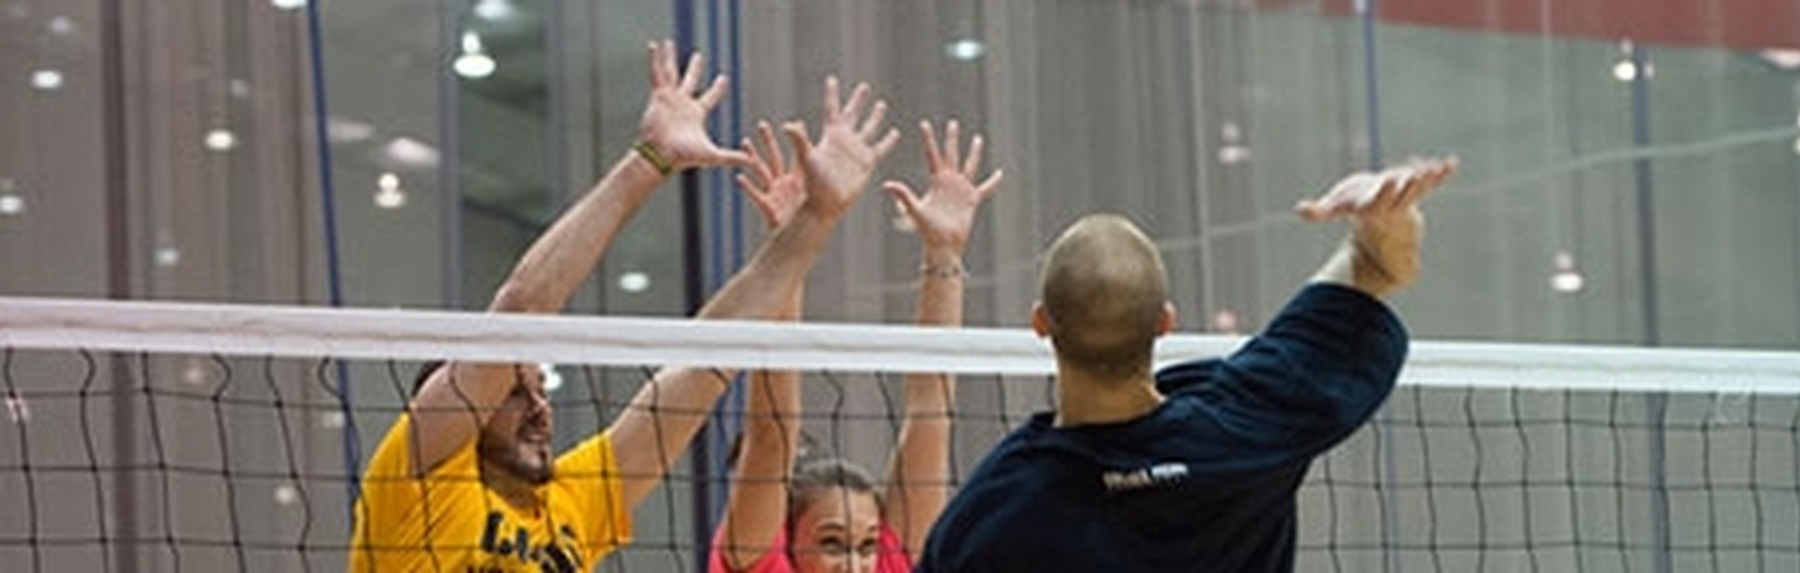 Adult Volleyball Leagues Chelsea Piers Connecticut Stamford Fairfield County Ct Chelsea Piers Connecticut Stamford Ct